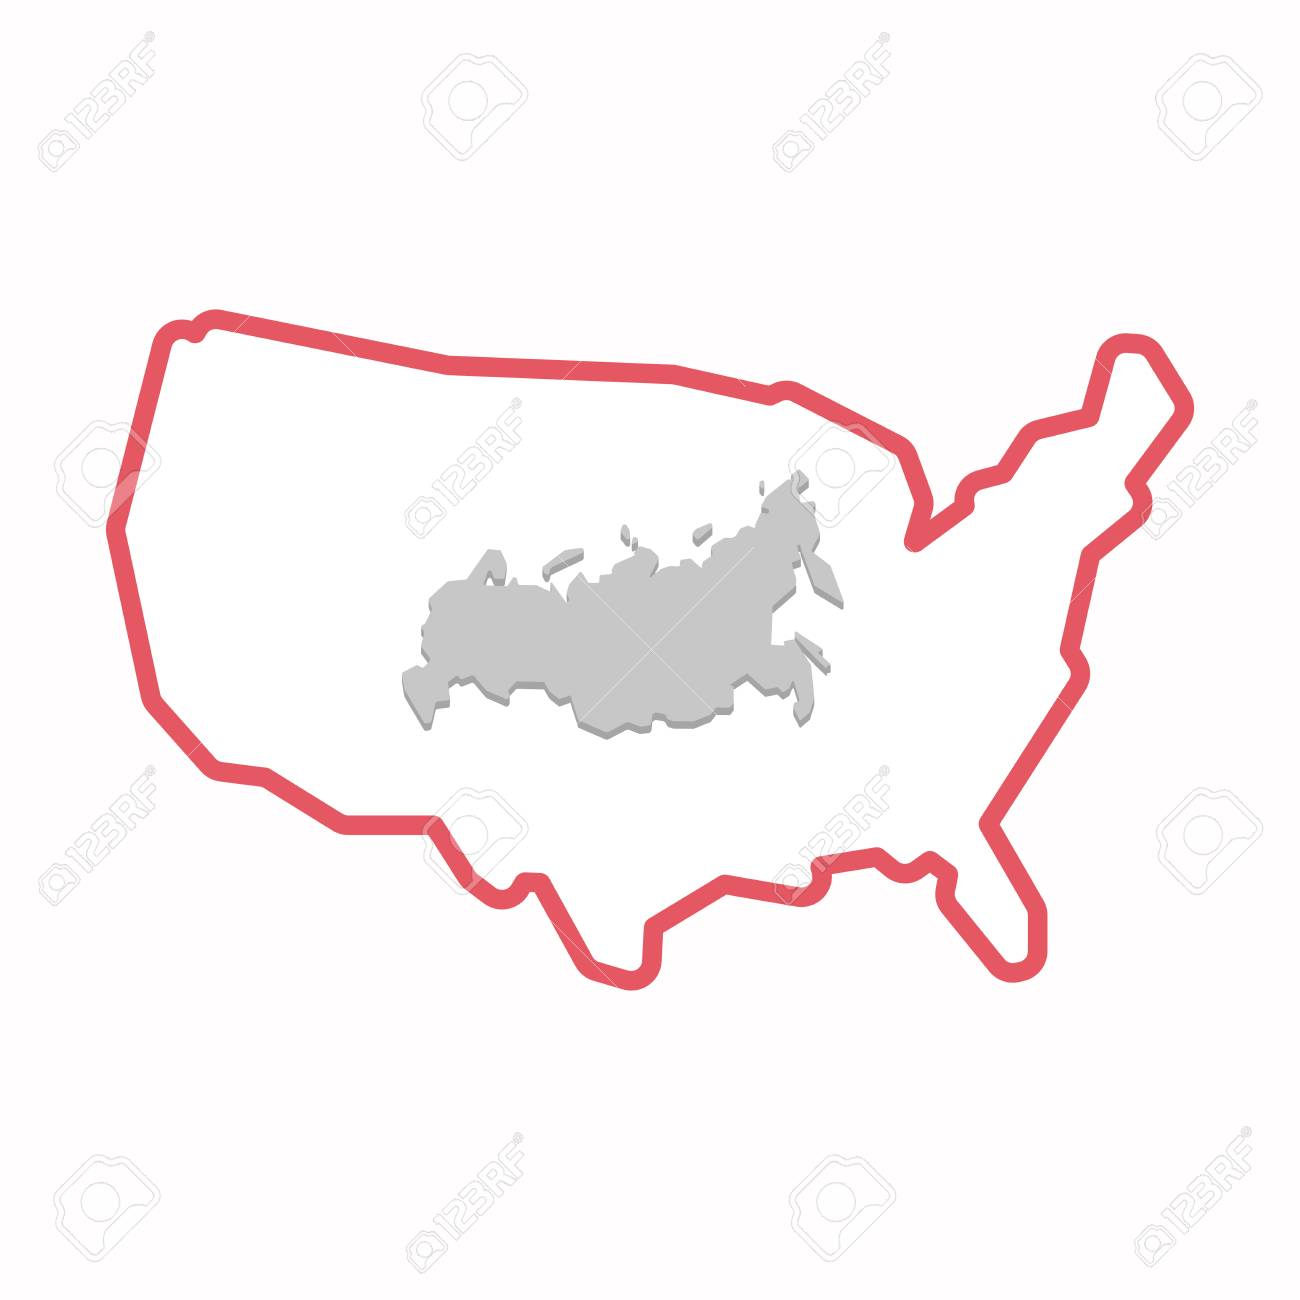 Usa And Russia Map.Illustration Of An Isolated Line Art Map Of Usa With A Map Of